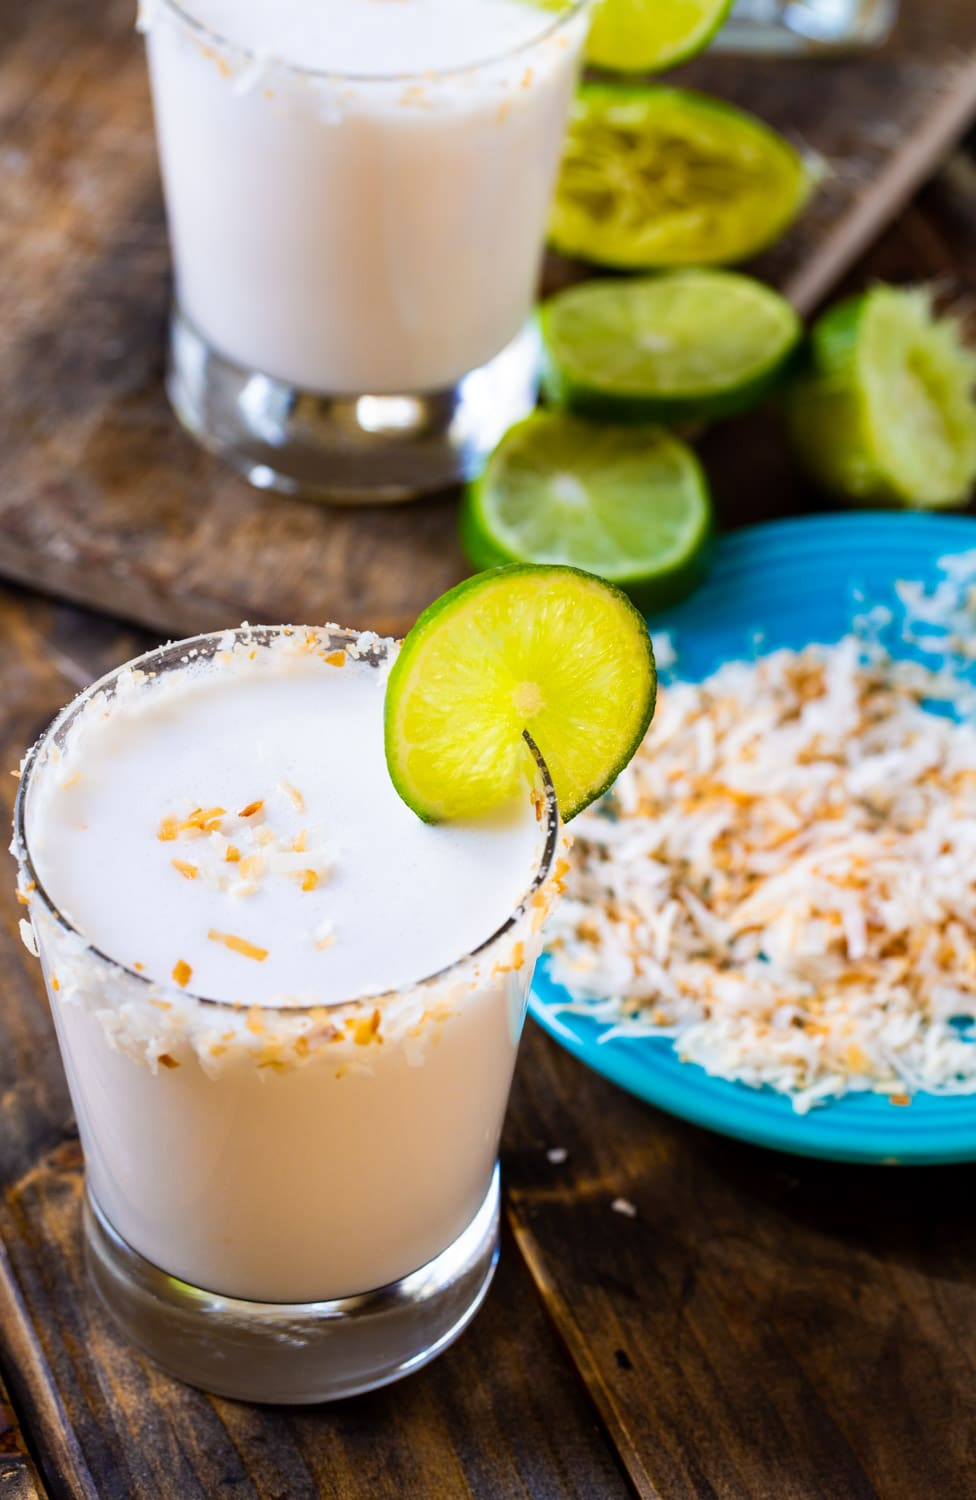 Margarita in aglass with plate of toasted coconut.